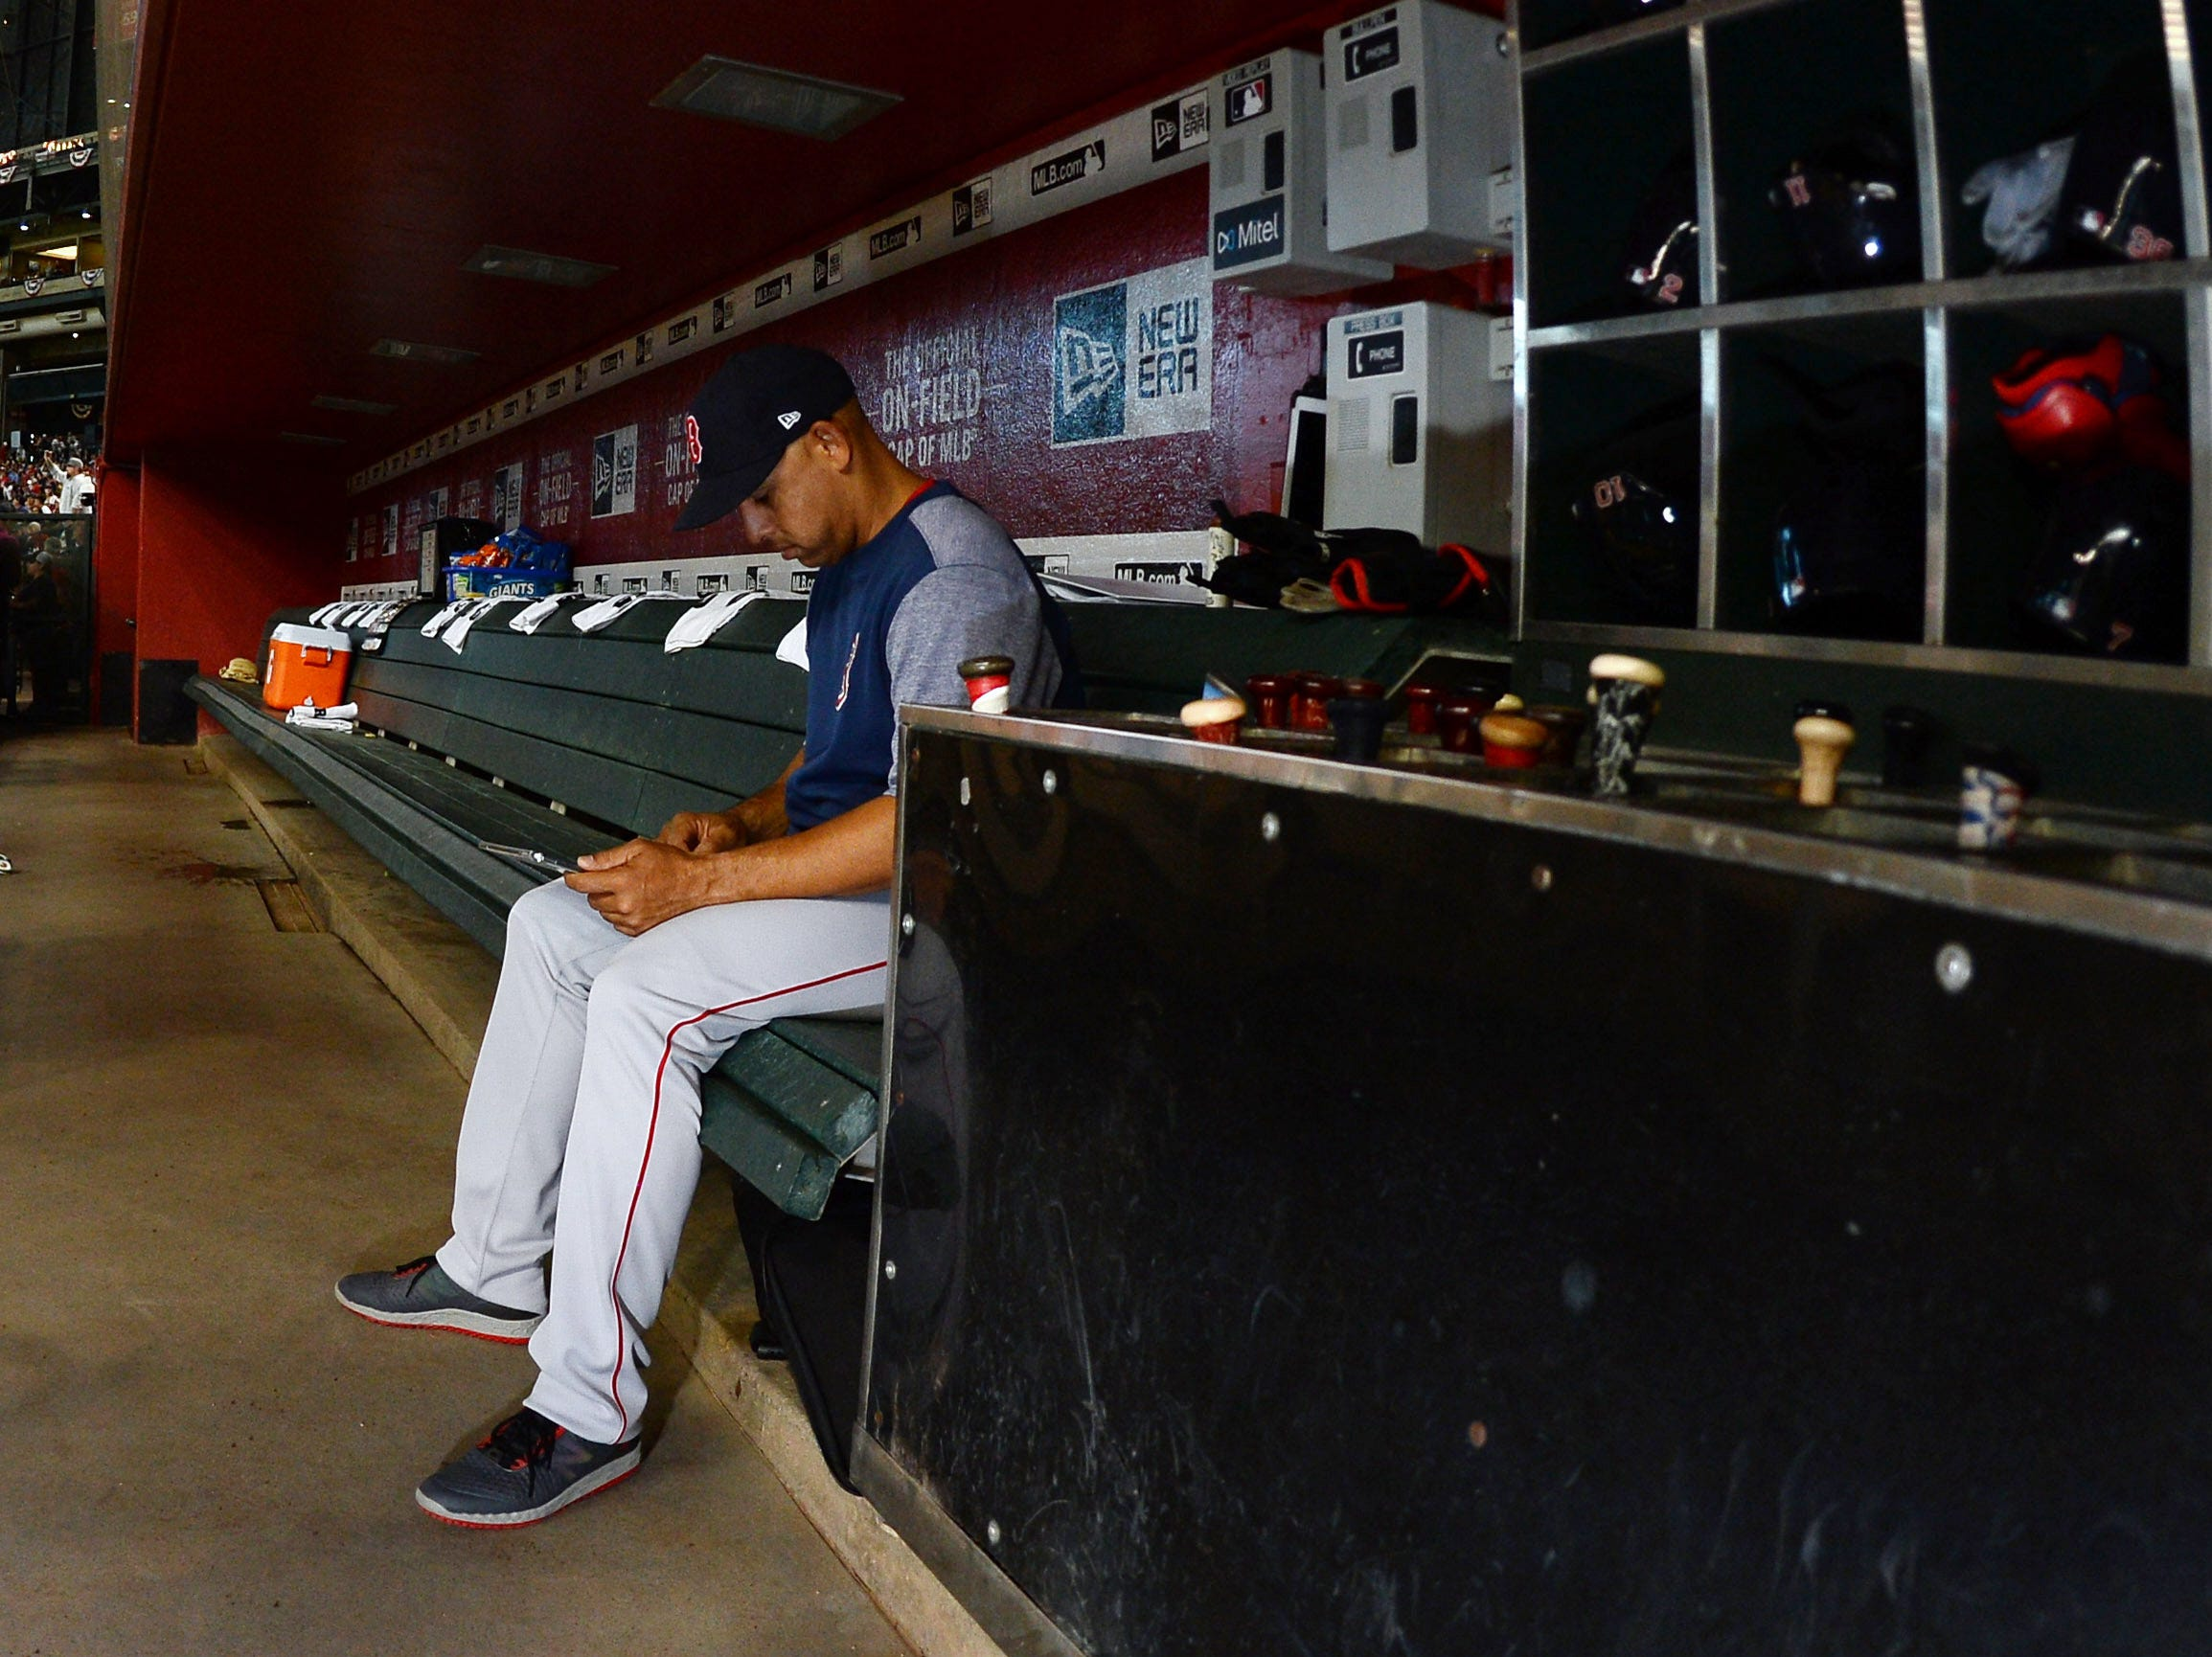 Apr 6, 2019; Phoenix, AZ, USA; Boston Red Sox manager Alex Cora (20) looks on prior to a game against the Arizona Diamondbacks at Chase Field. Mandatory Credit: Joe Camporeale-USA TODAY Sports